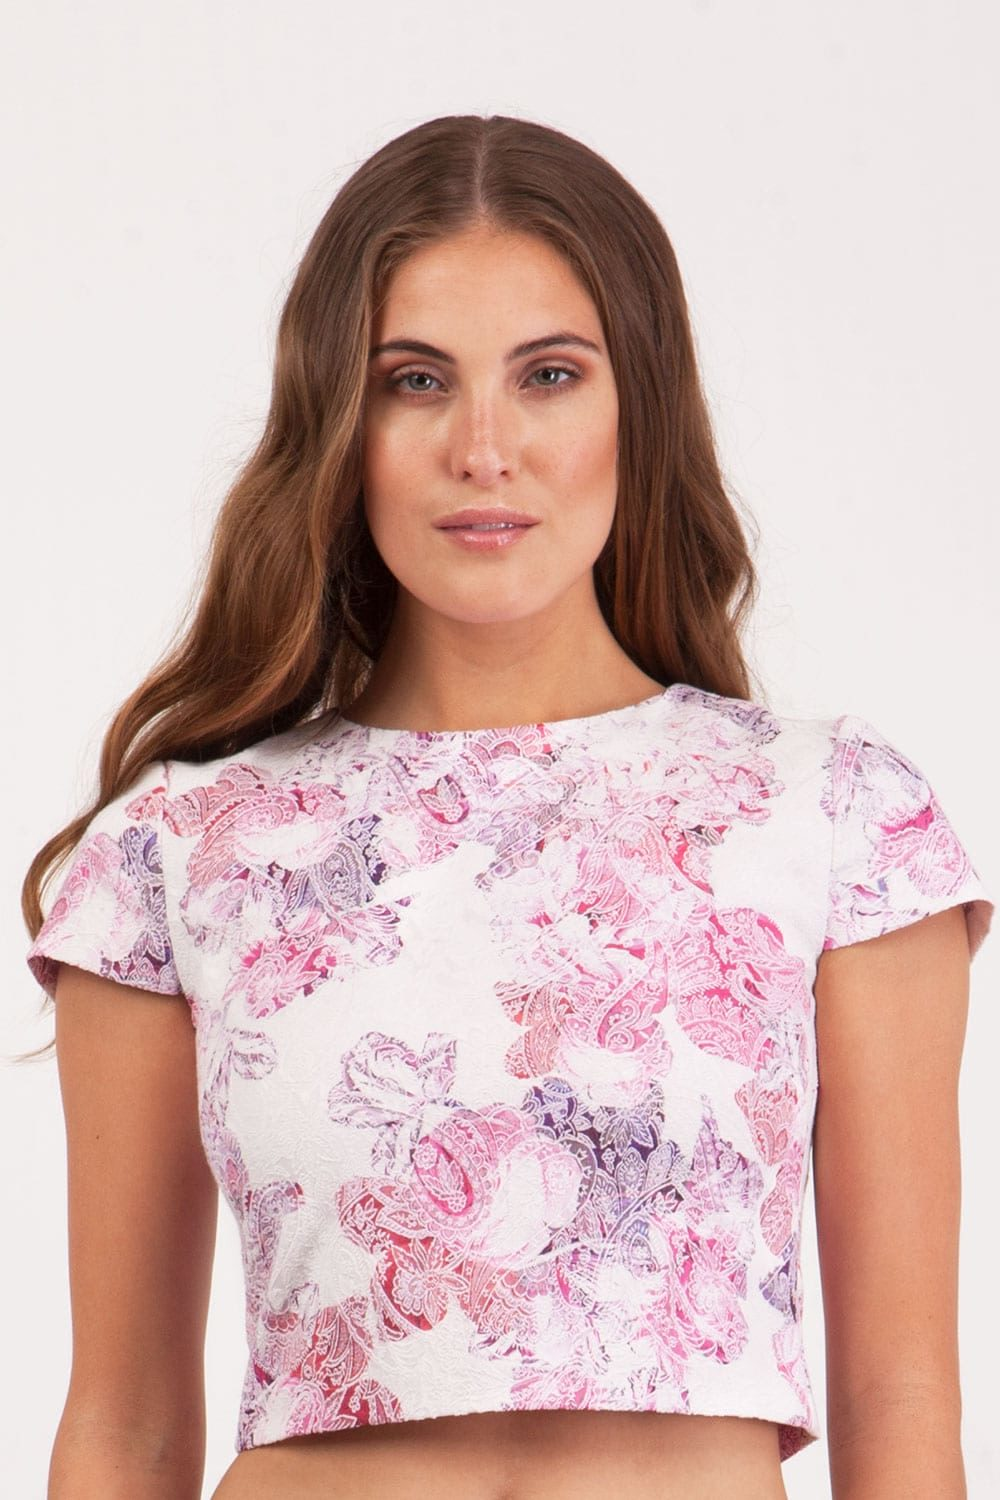 Hybrid Fashion 1099 Cerys Cropped Pink Jacquard Top